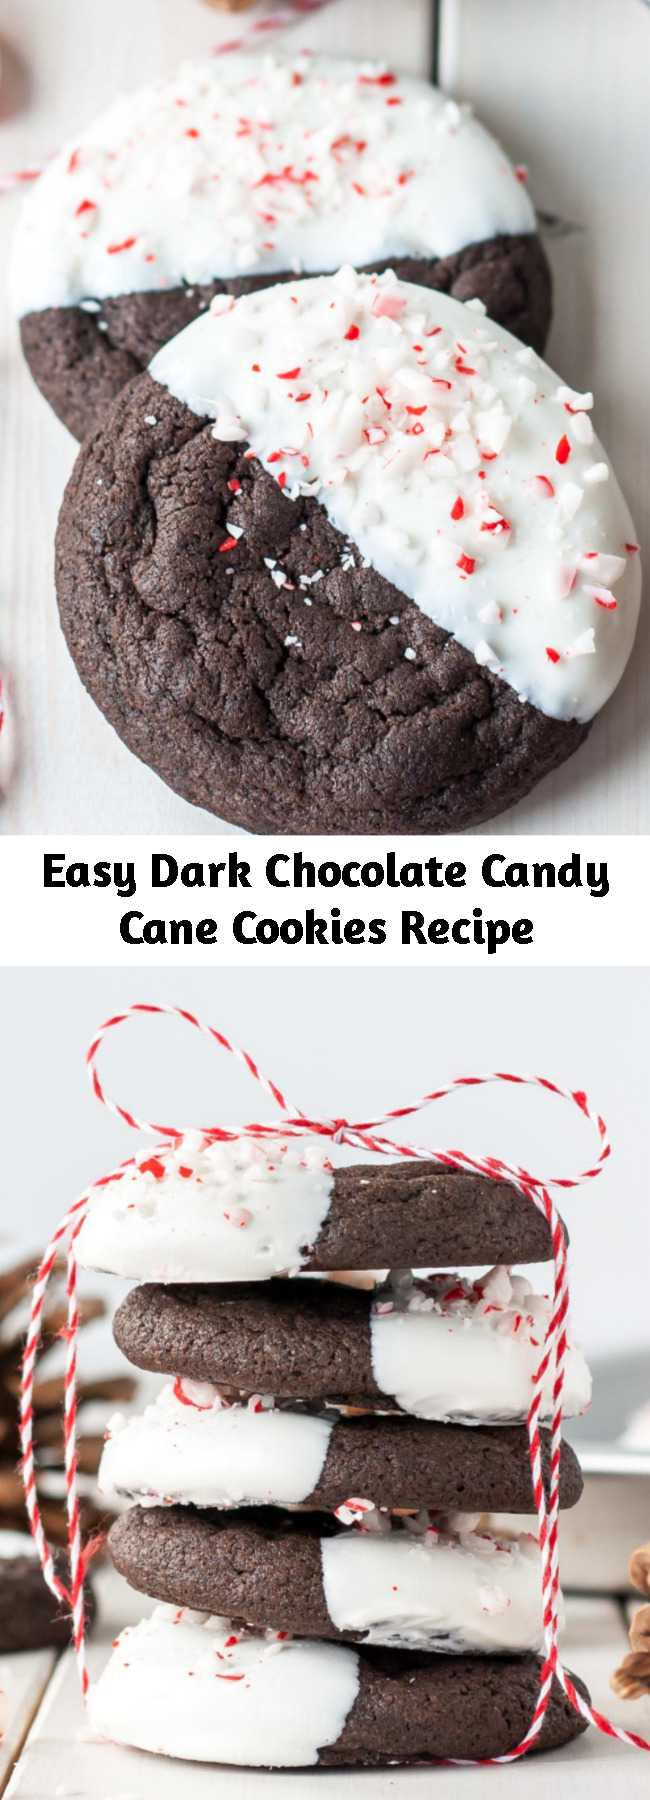 Easy Dark Chocolate Candy Cane Cookies Recipe - The classic combination of chocolate and peppermint make these Dark Chocolate Candy Cane Cookies the perfect treat for the holidays!